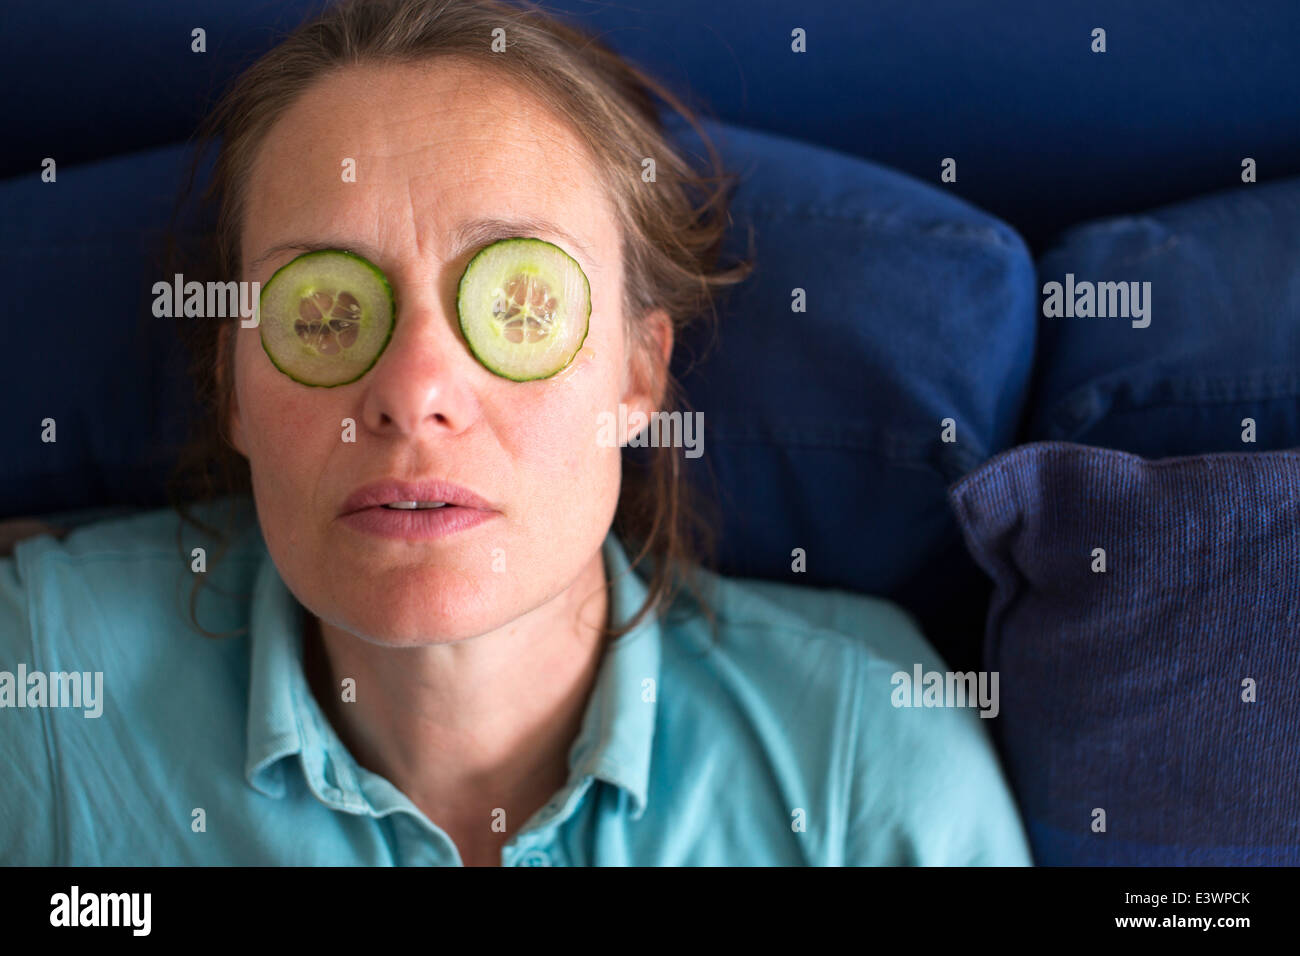 woman suffering from hayfever with cucumber slices on her eyelids - Stock Image